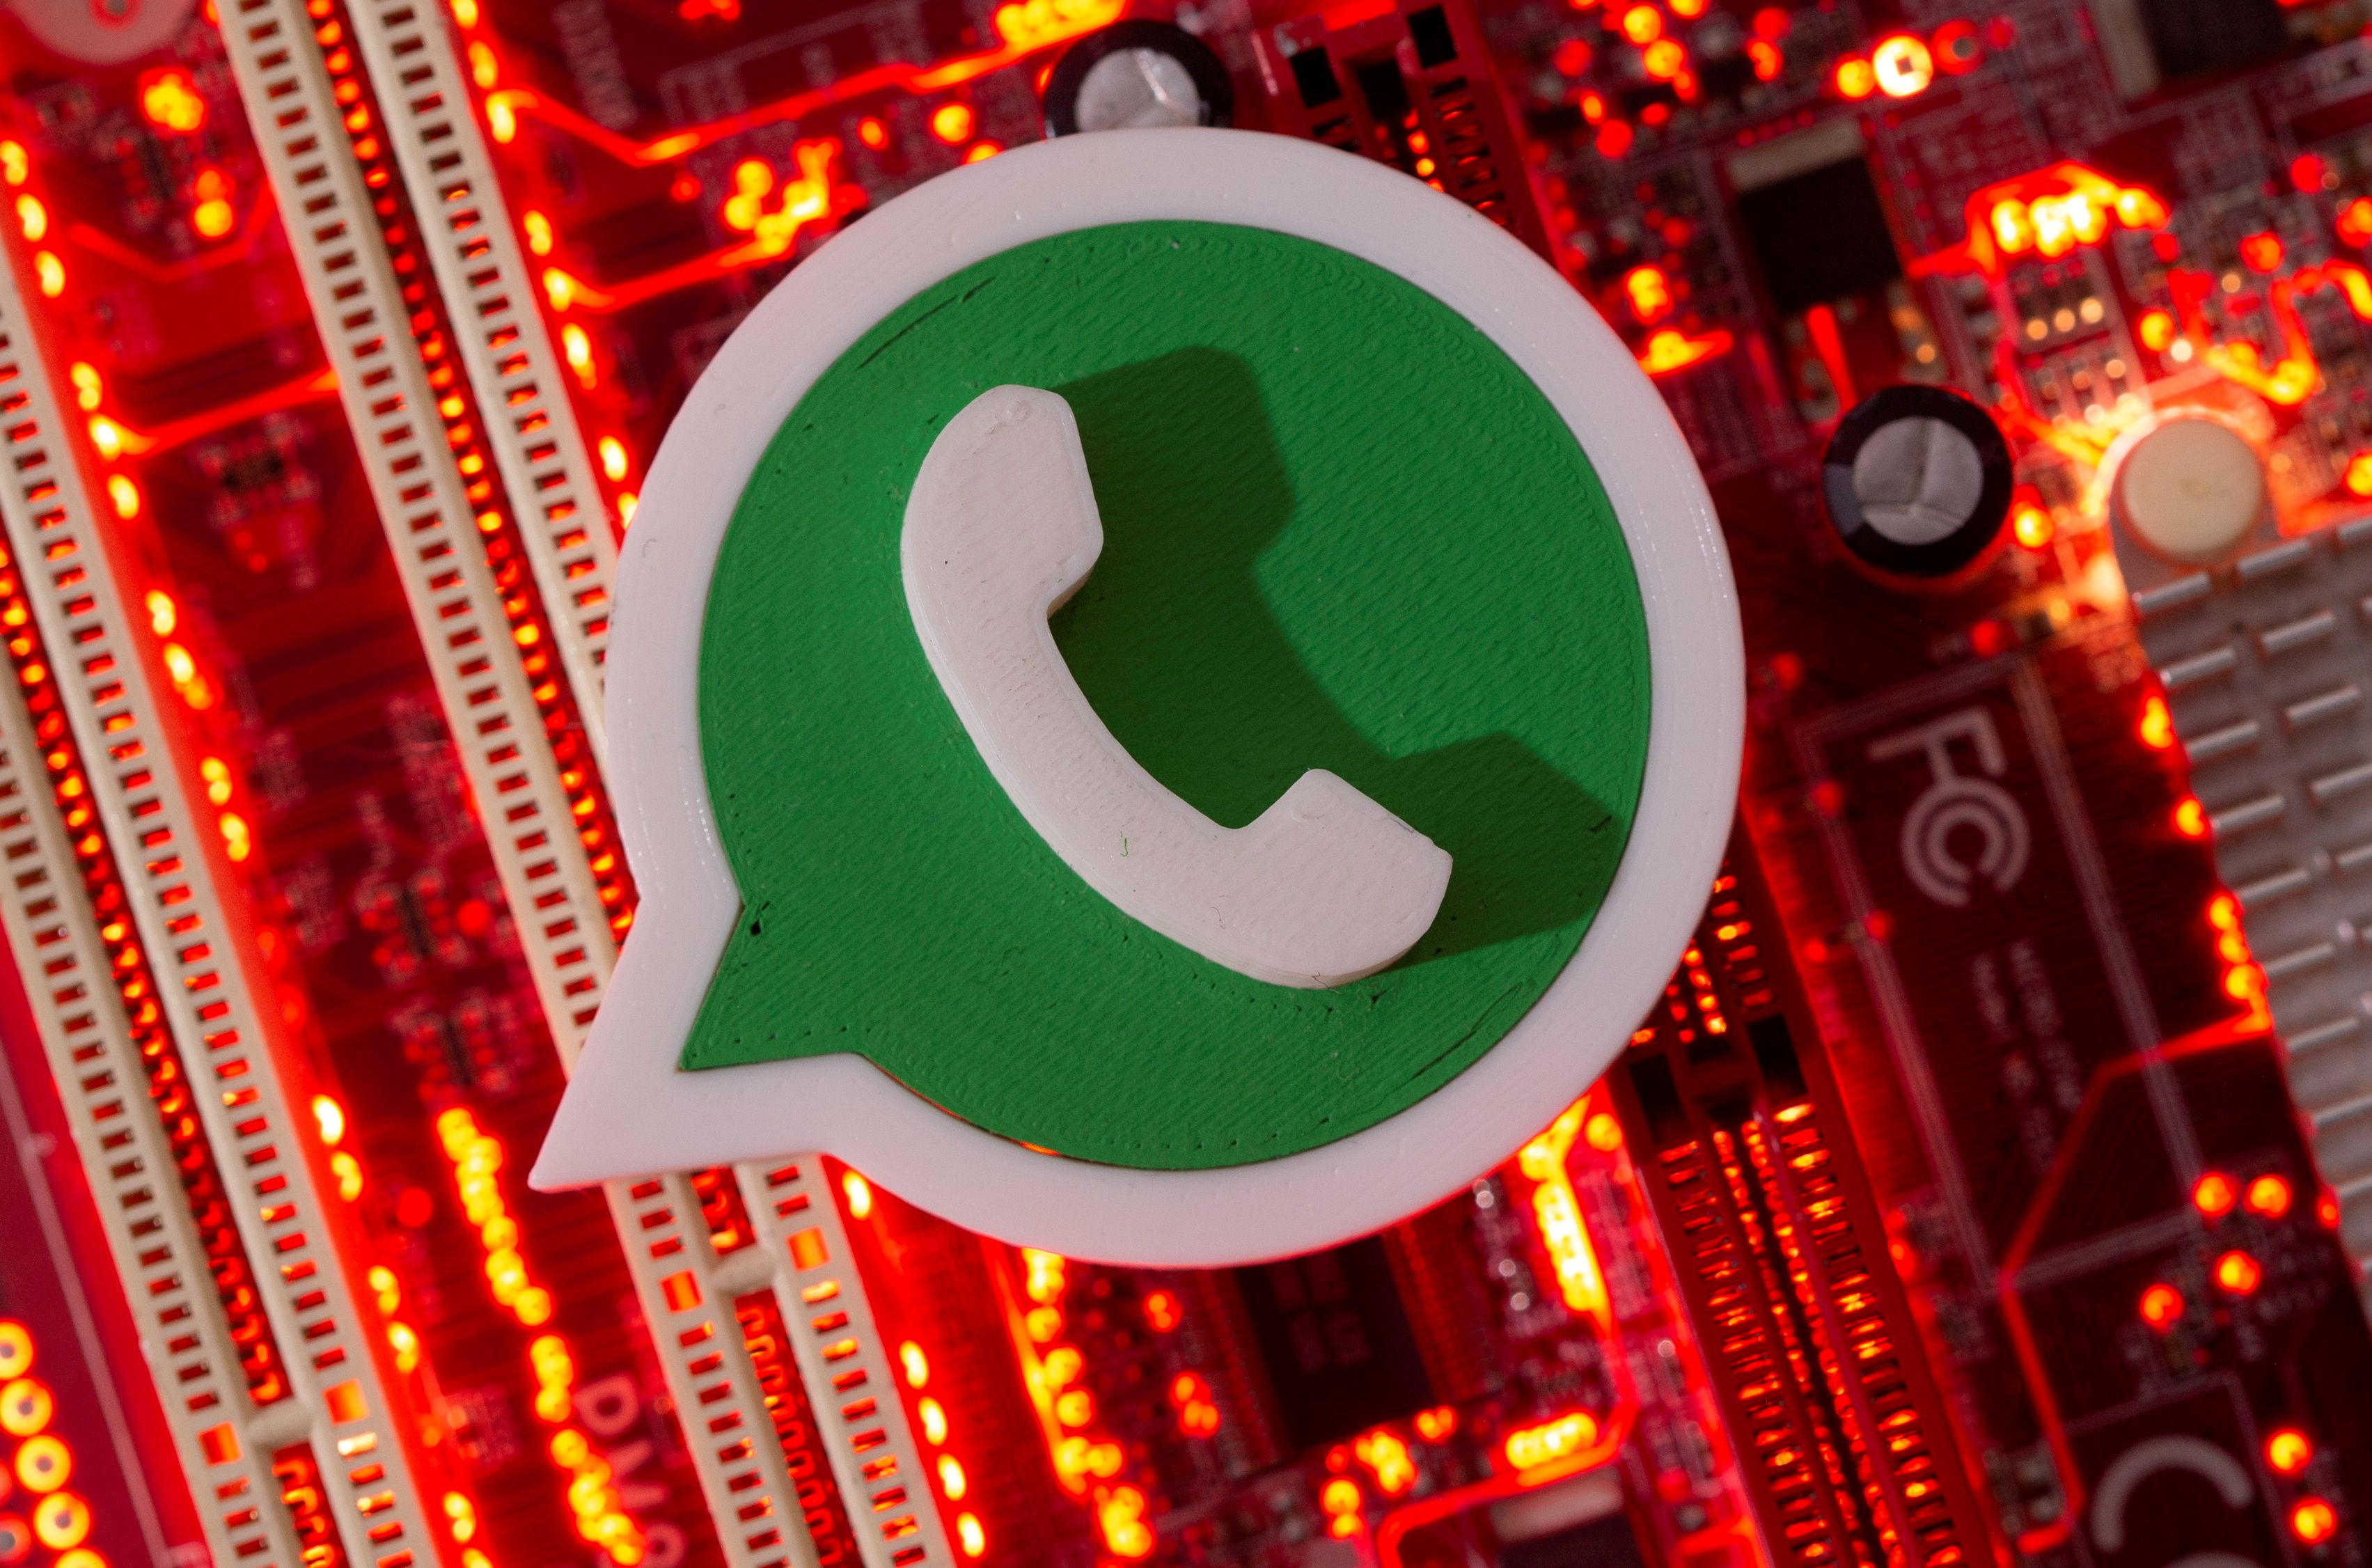 Facebook-owned WhatsApp filed lawsuit against government of India in Delhi High Court, saying that new media rules mean an end to privacy.